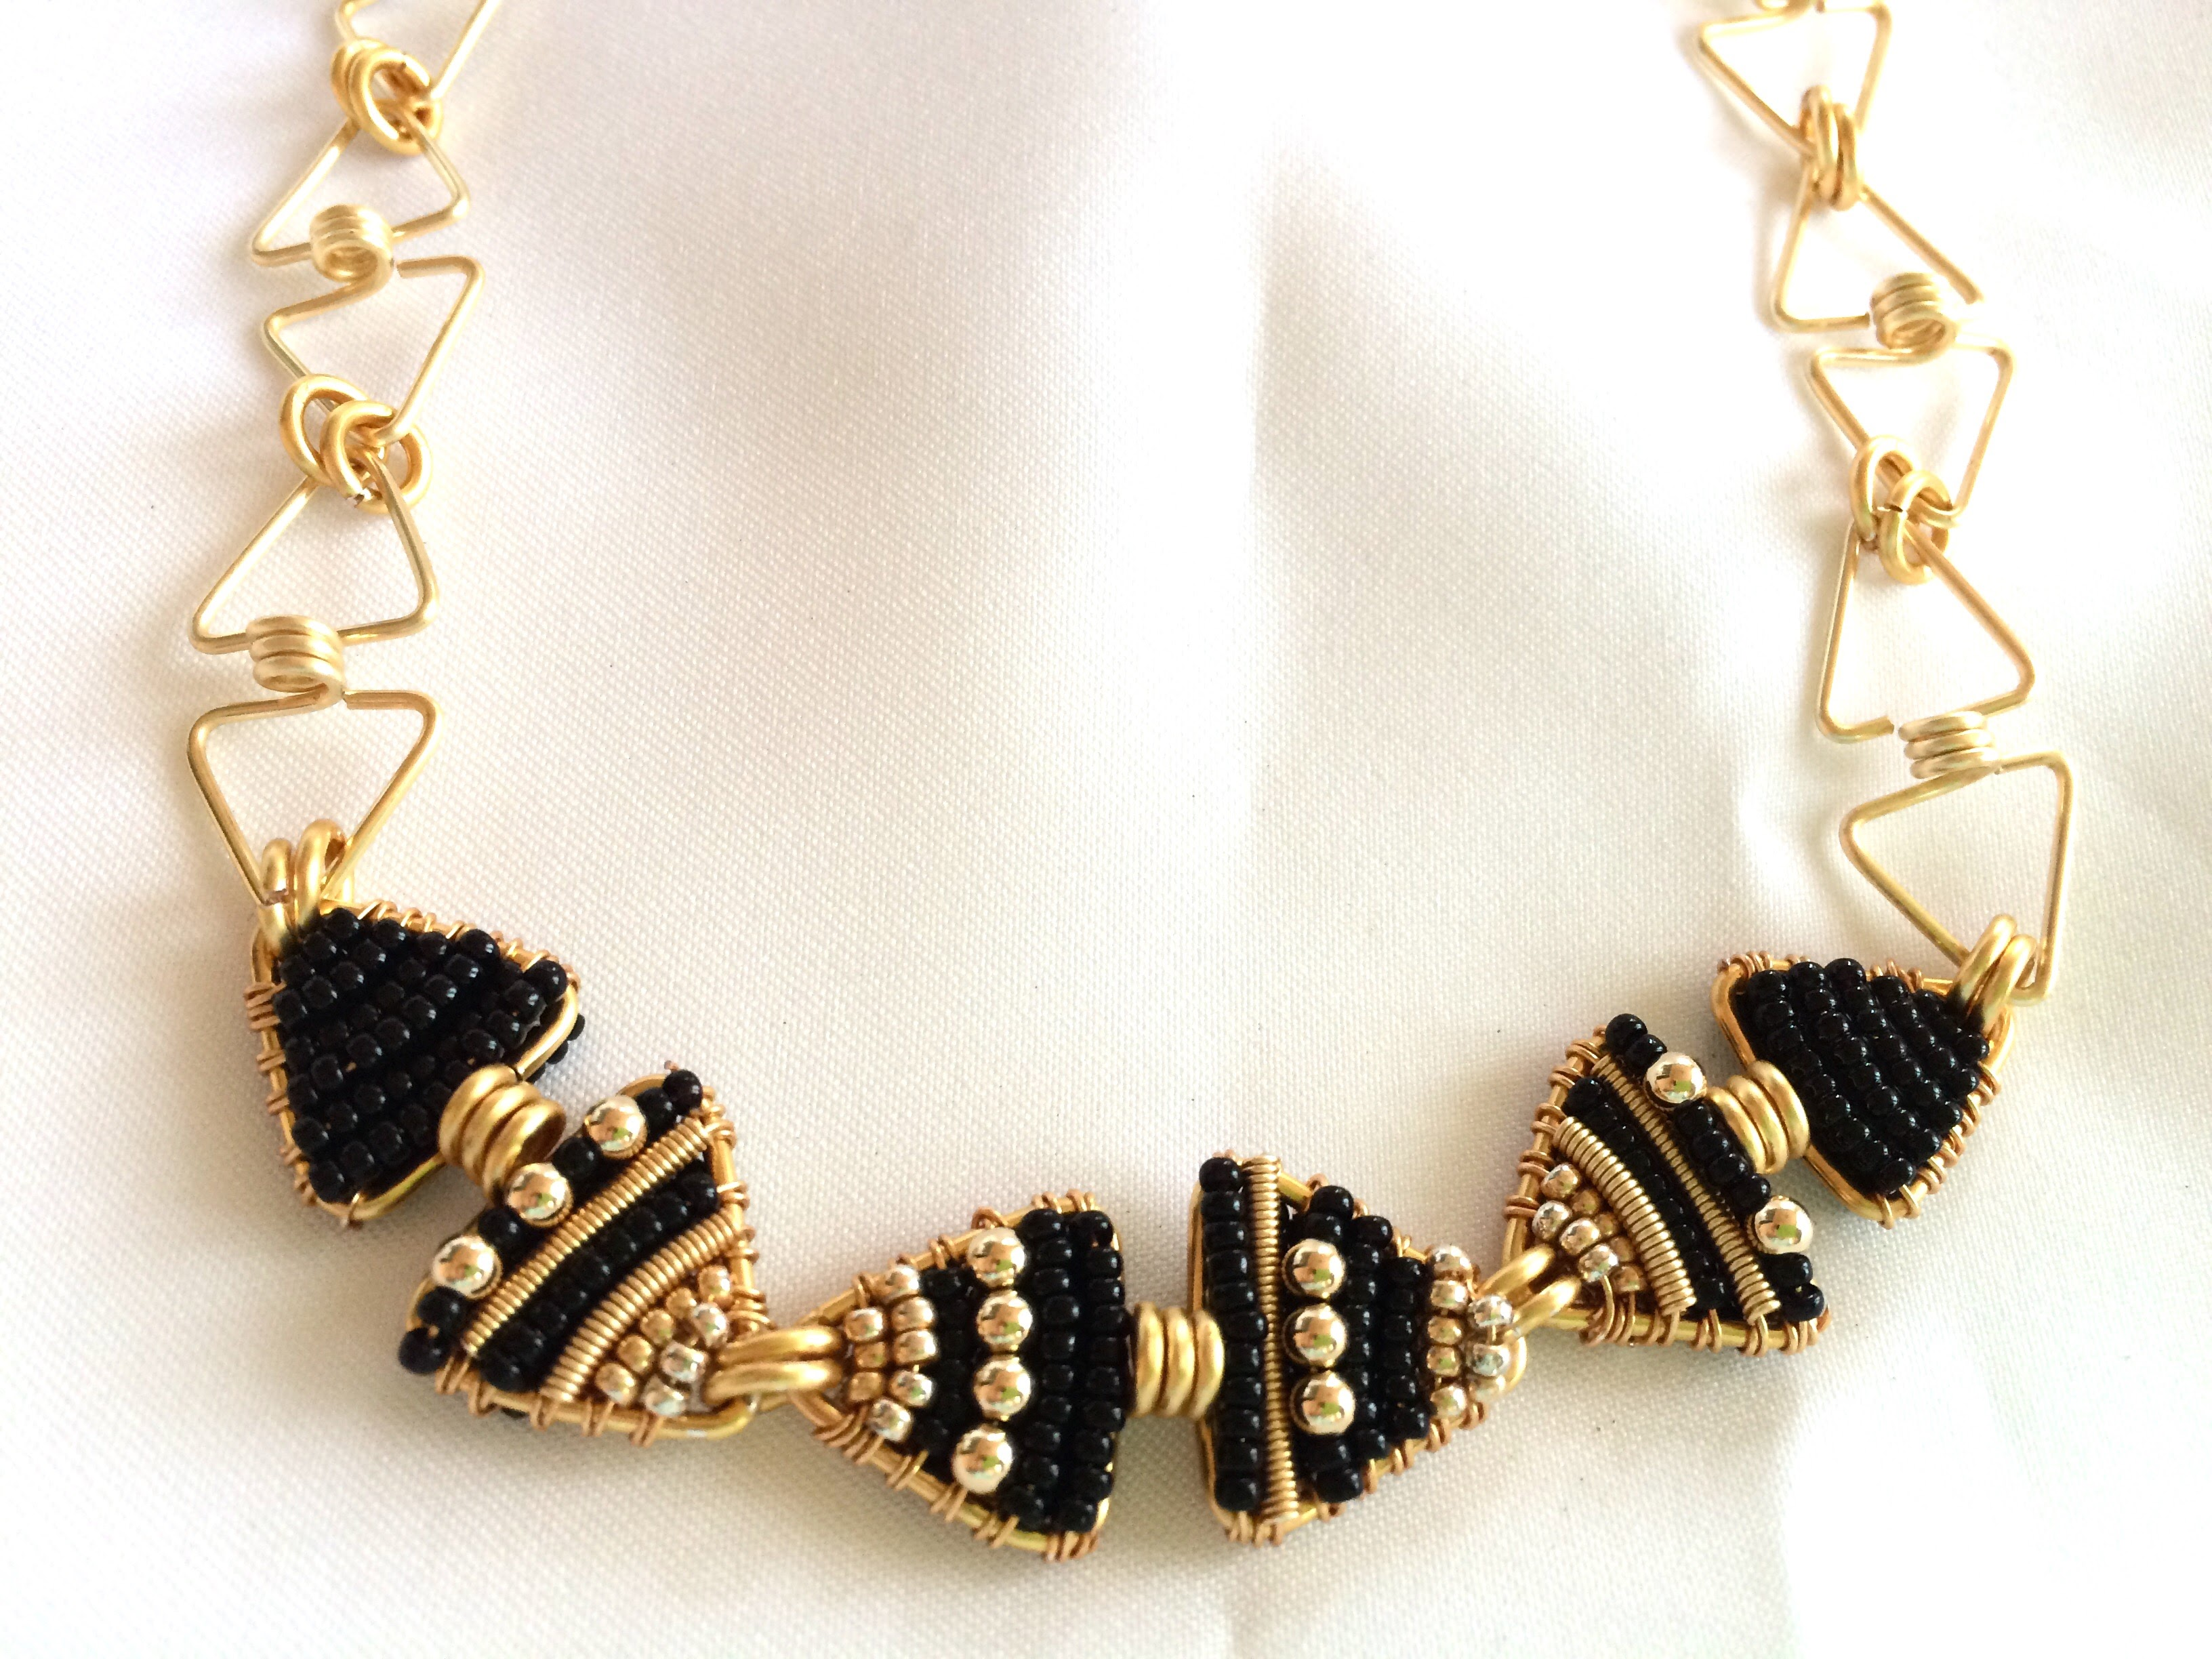 Black Tie: 14k Gold & Glass Beads